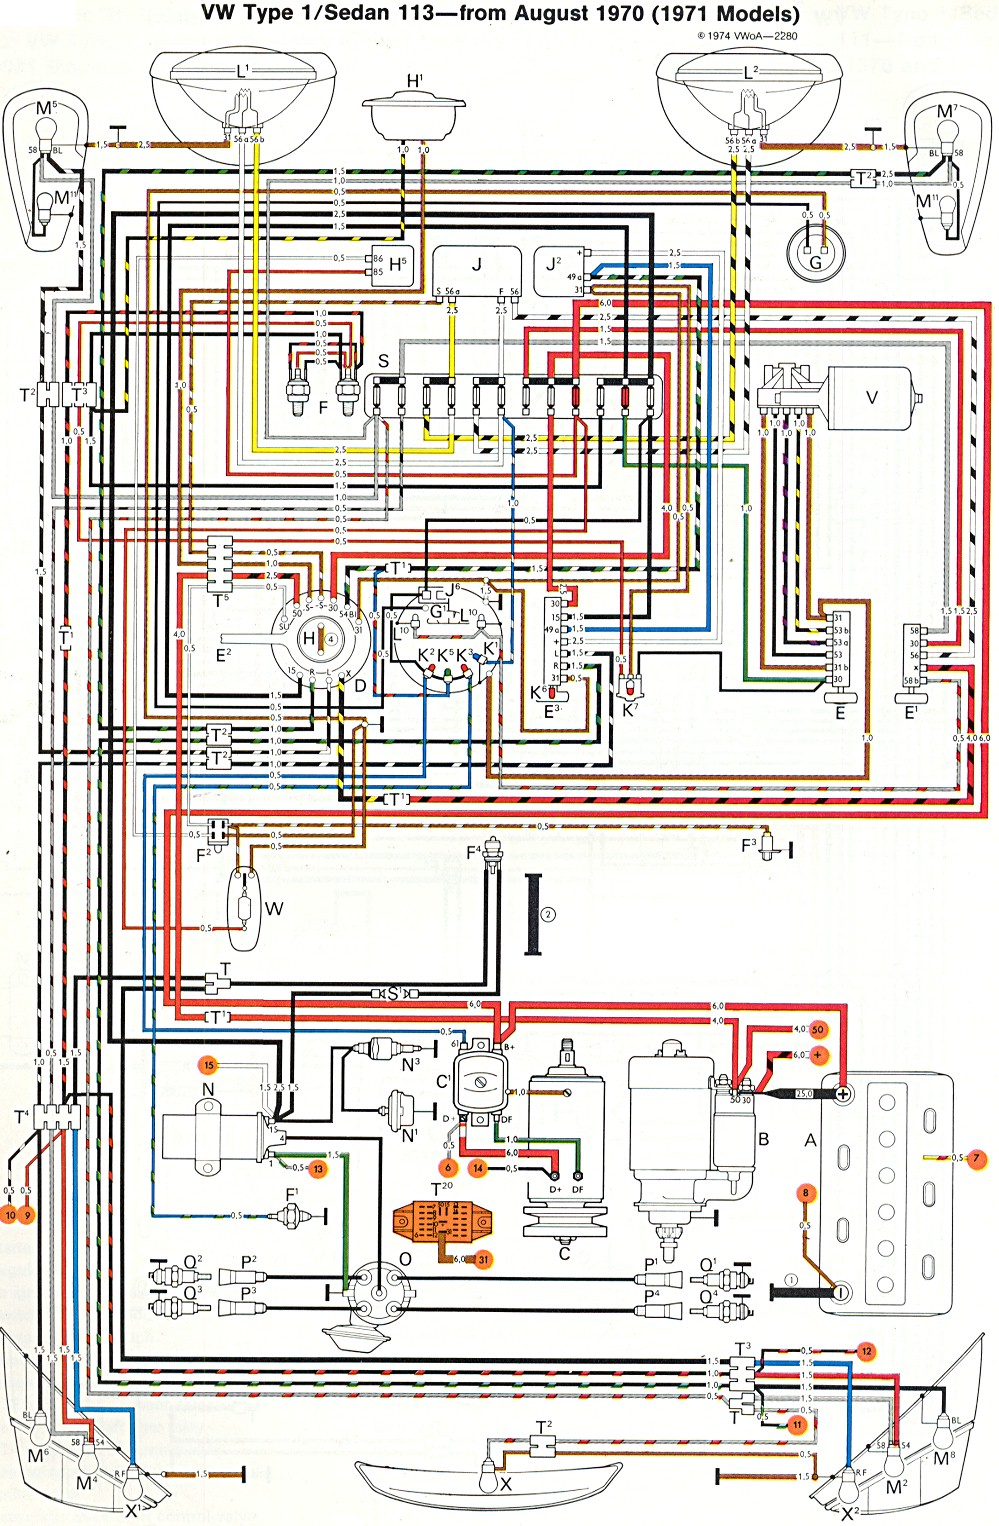 bug_super_71 1971 super beetle wiring diagram thegoldenbug com vw wiring diagrams at cita.asia